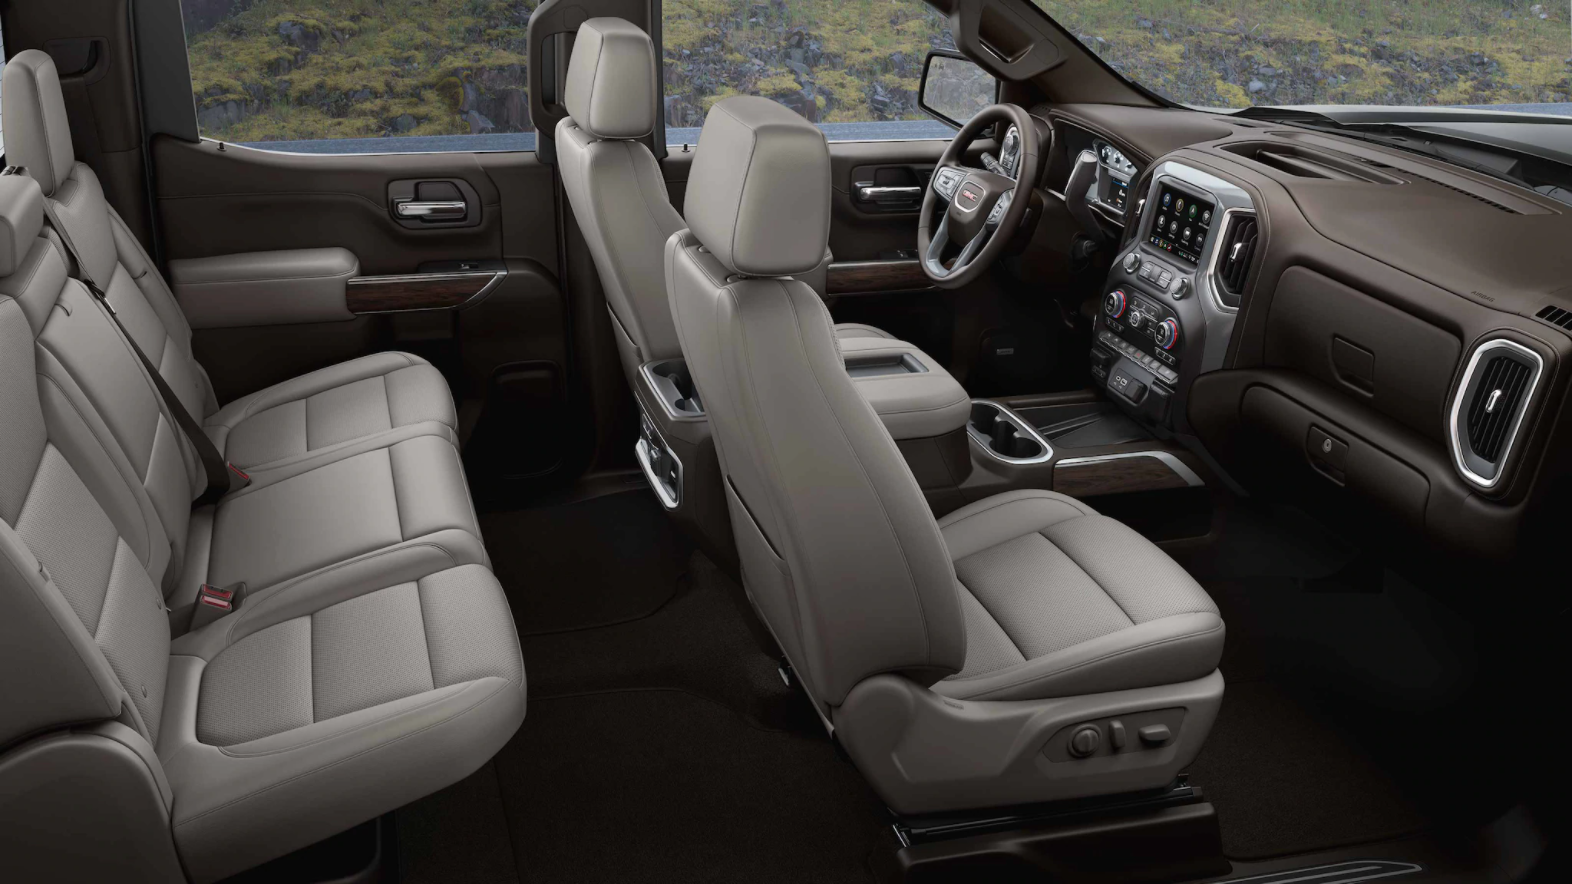 Side view of seating in the GMC Sierra